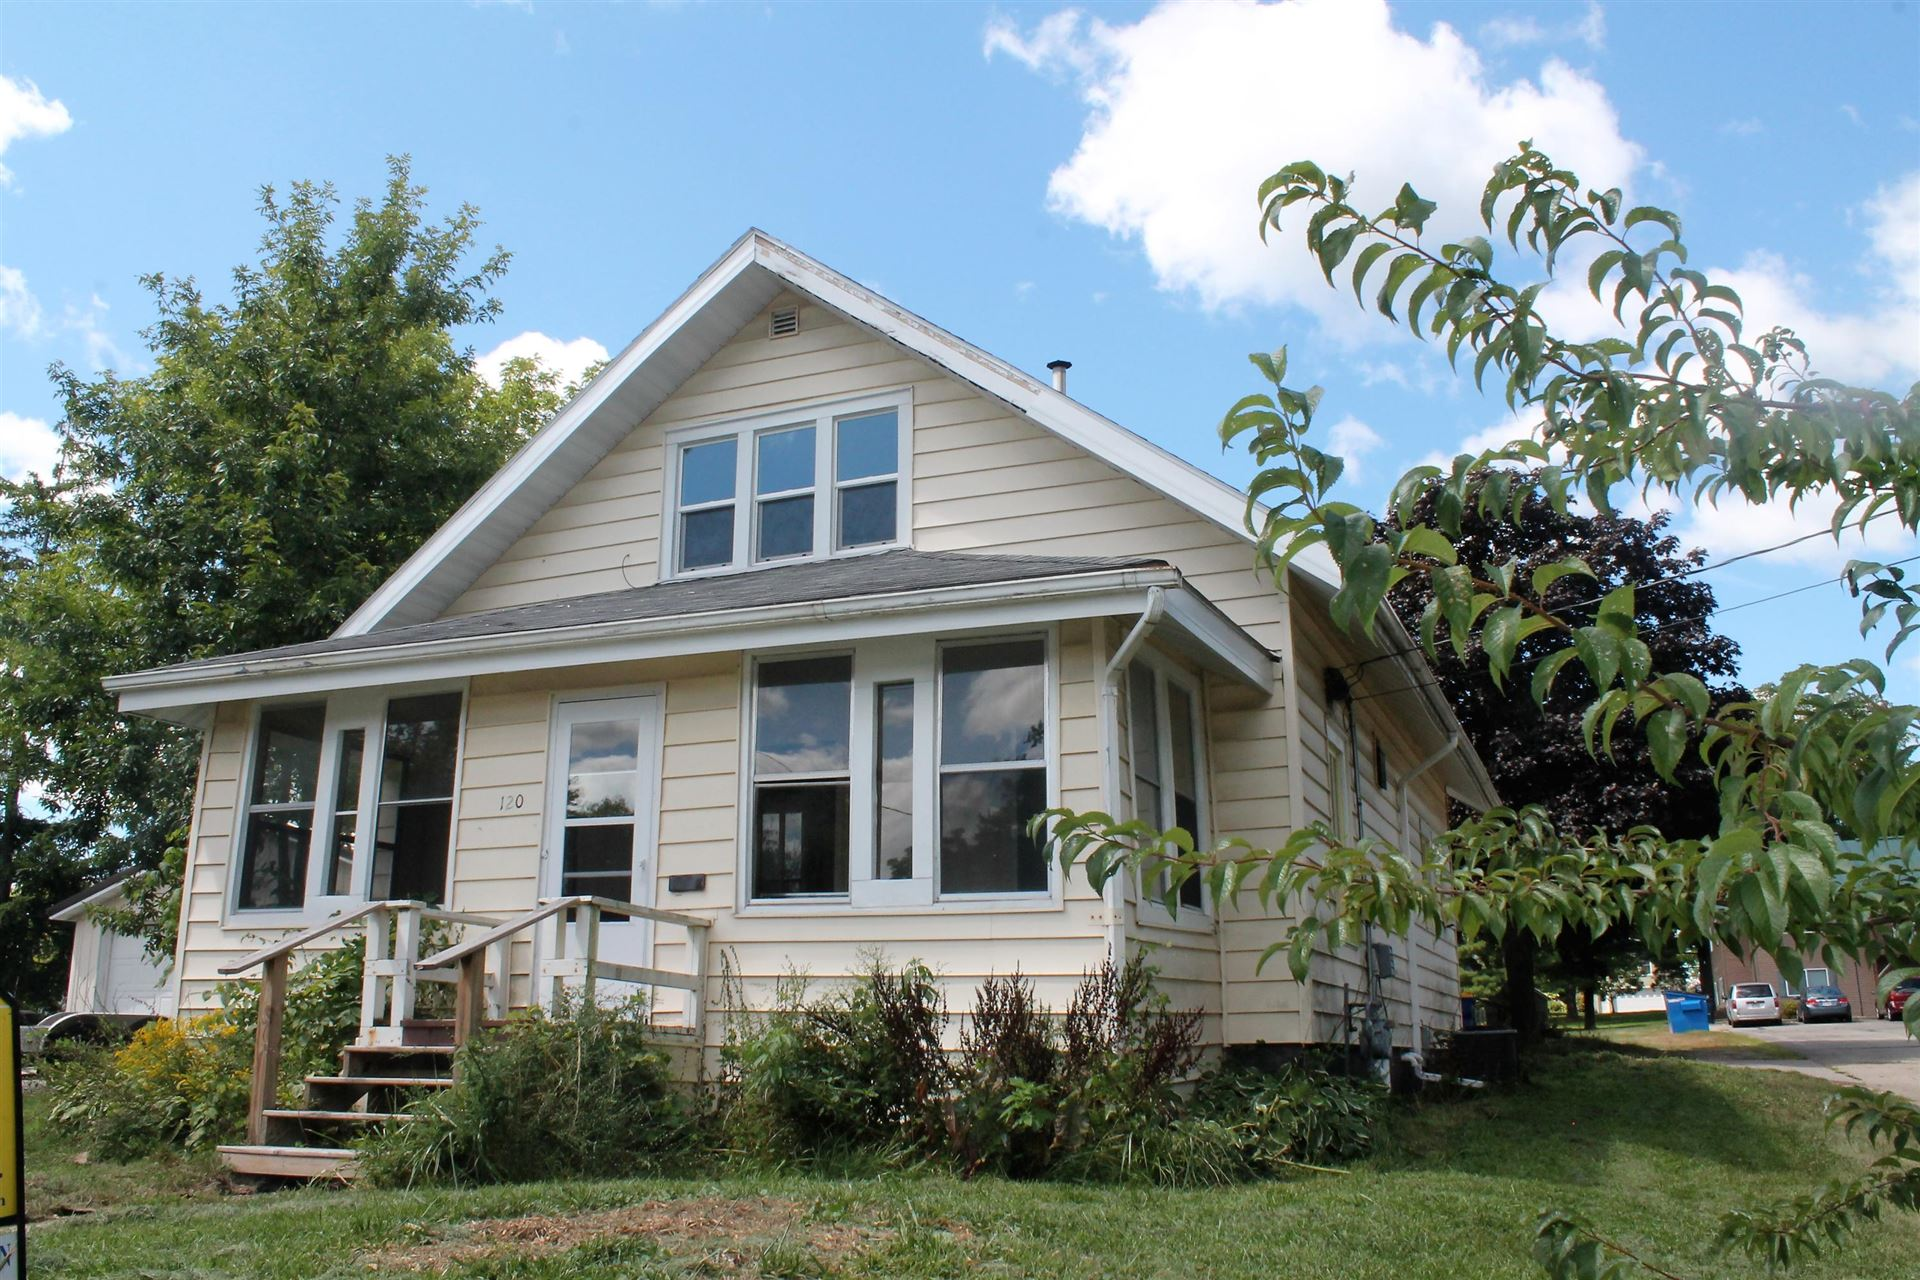 120 N lincoln Ave, Viroqua, WI 54665 - MLS#: 1705075